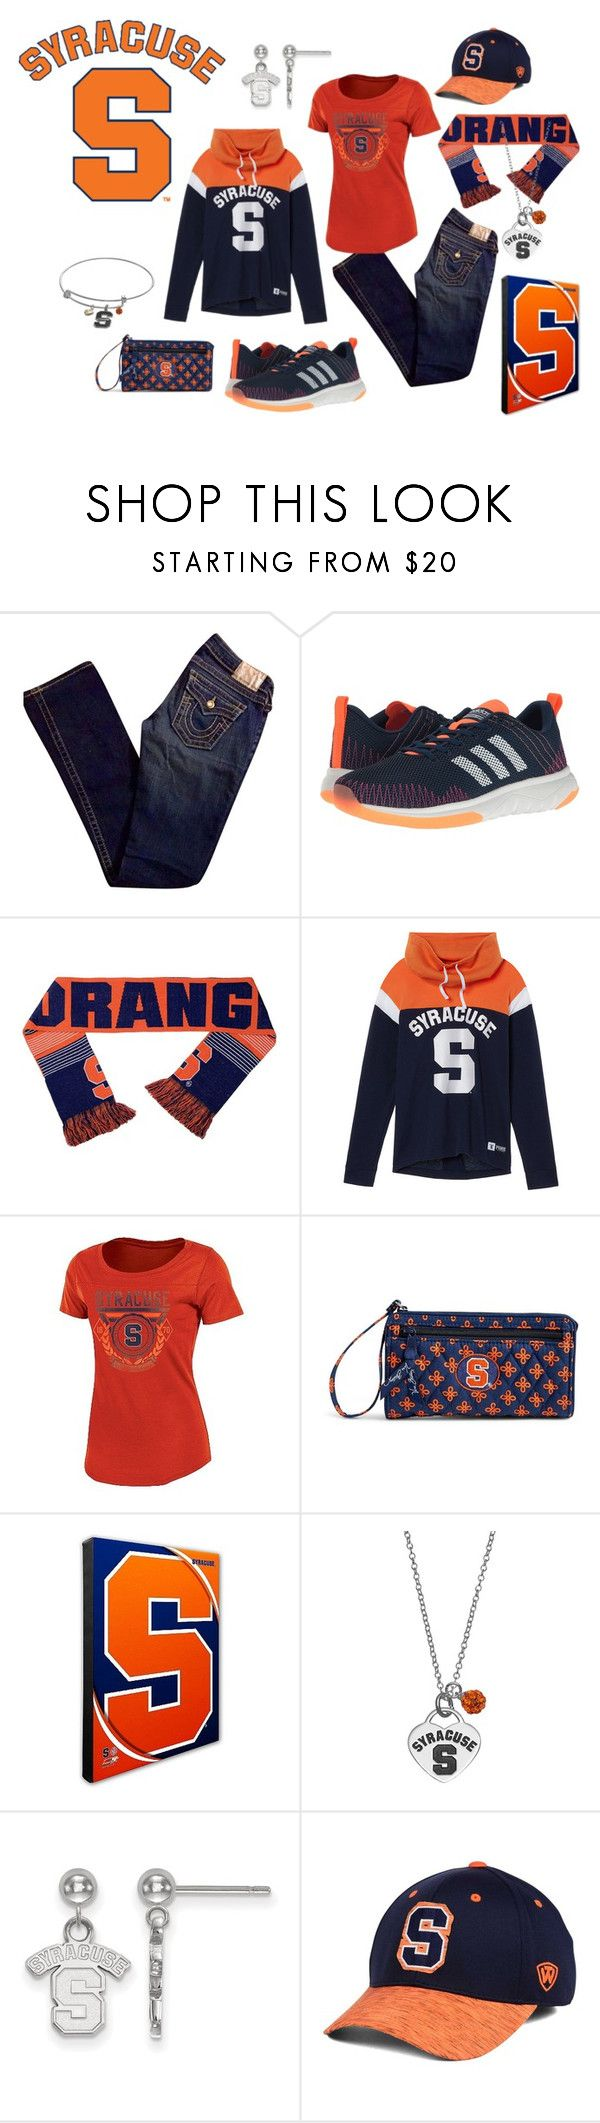 """""""Syracuse Born and Raised"""" by tammyrog ❤ liked on Polyvore featuring True Religion, adidas, Forever Collectibles, Victoria's Secret, Vera Bradley, Fiora, LogoArt and Top of the World"""